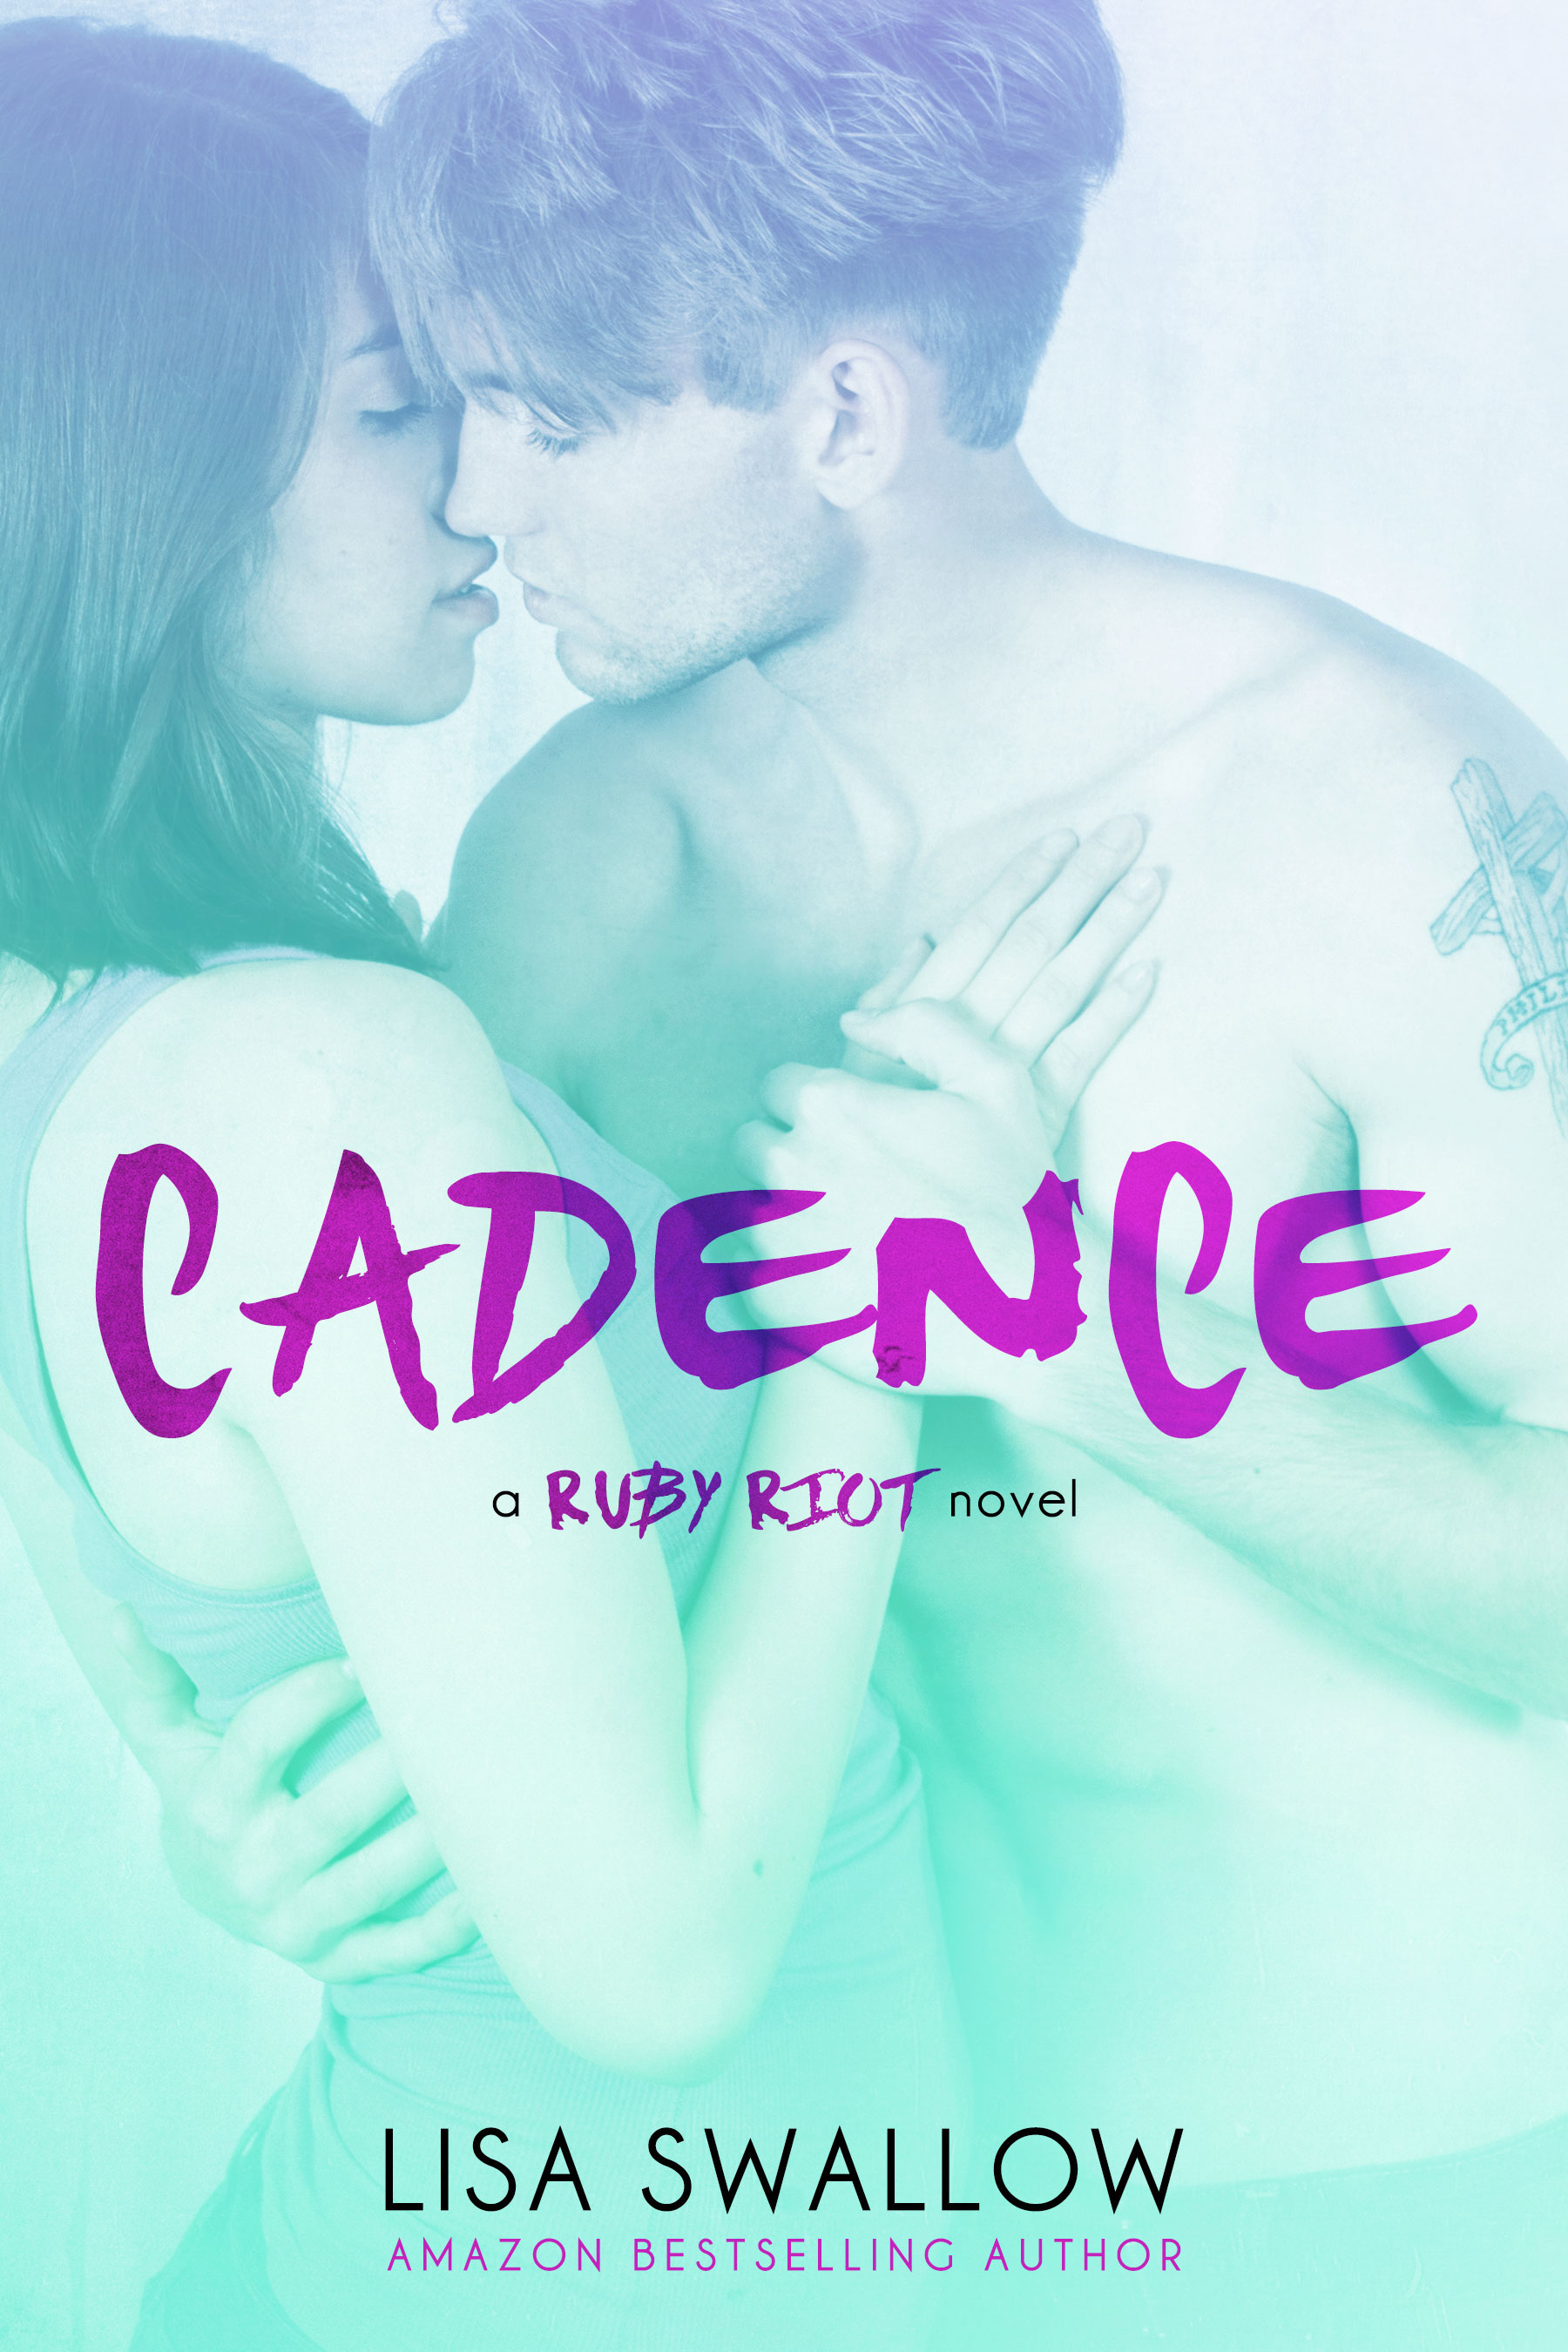 Cadence by Lisa Swallows